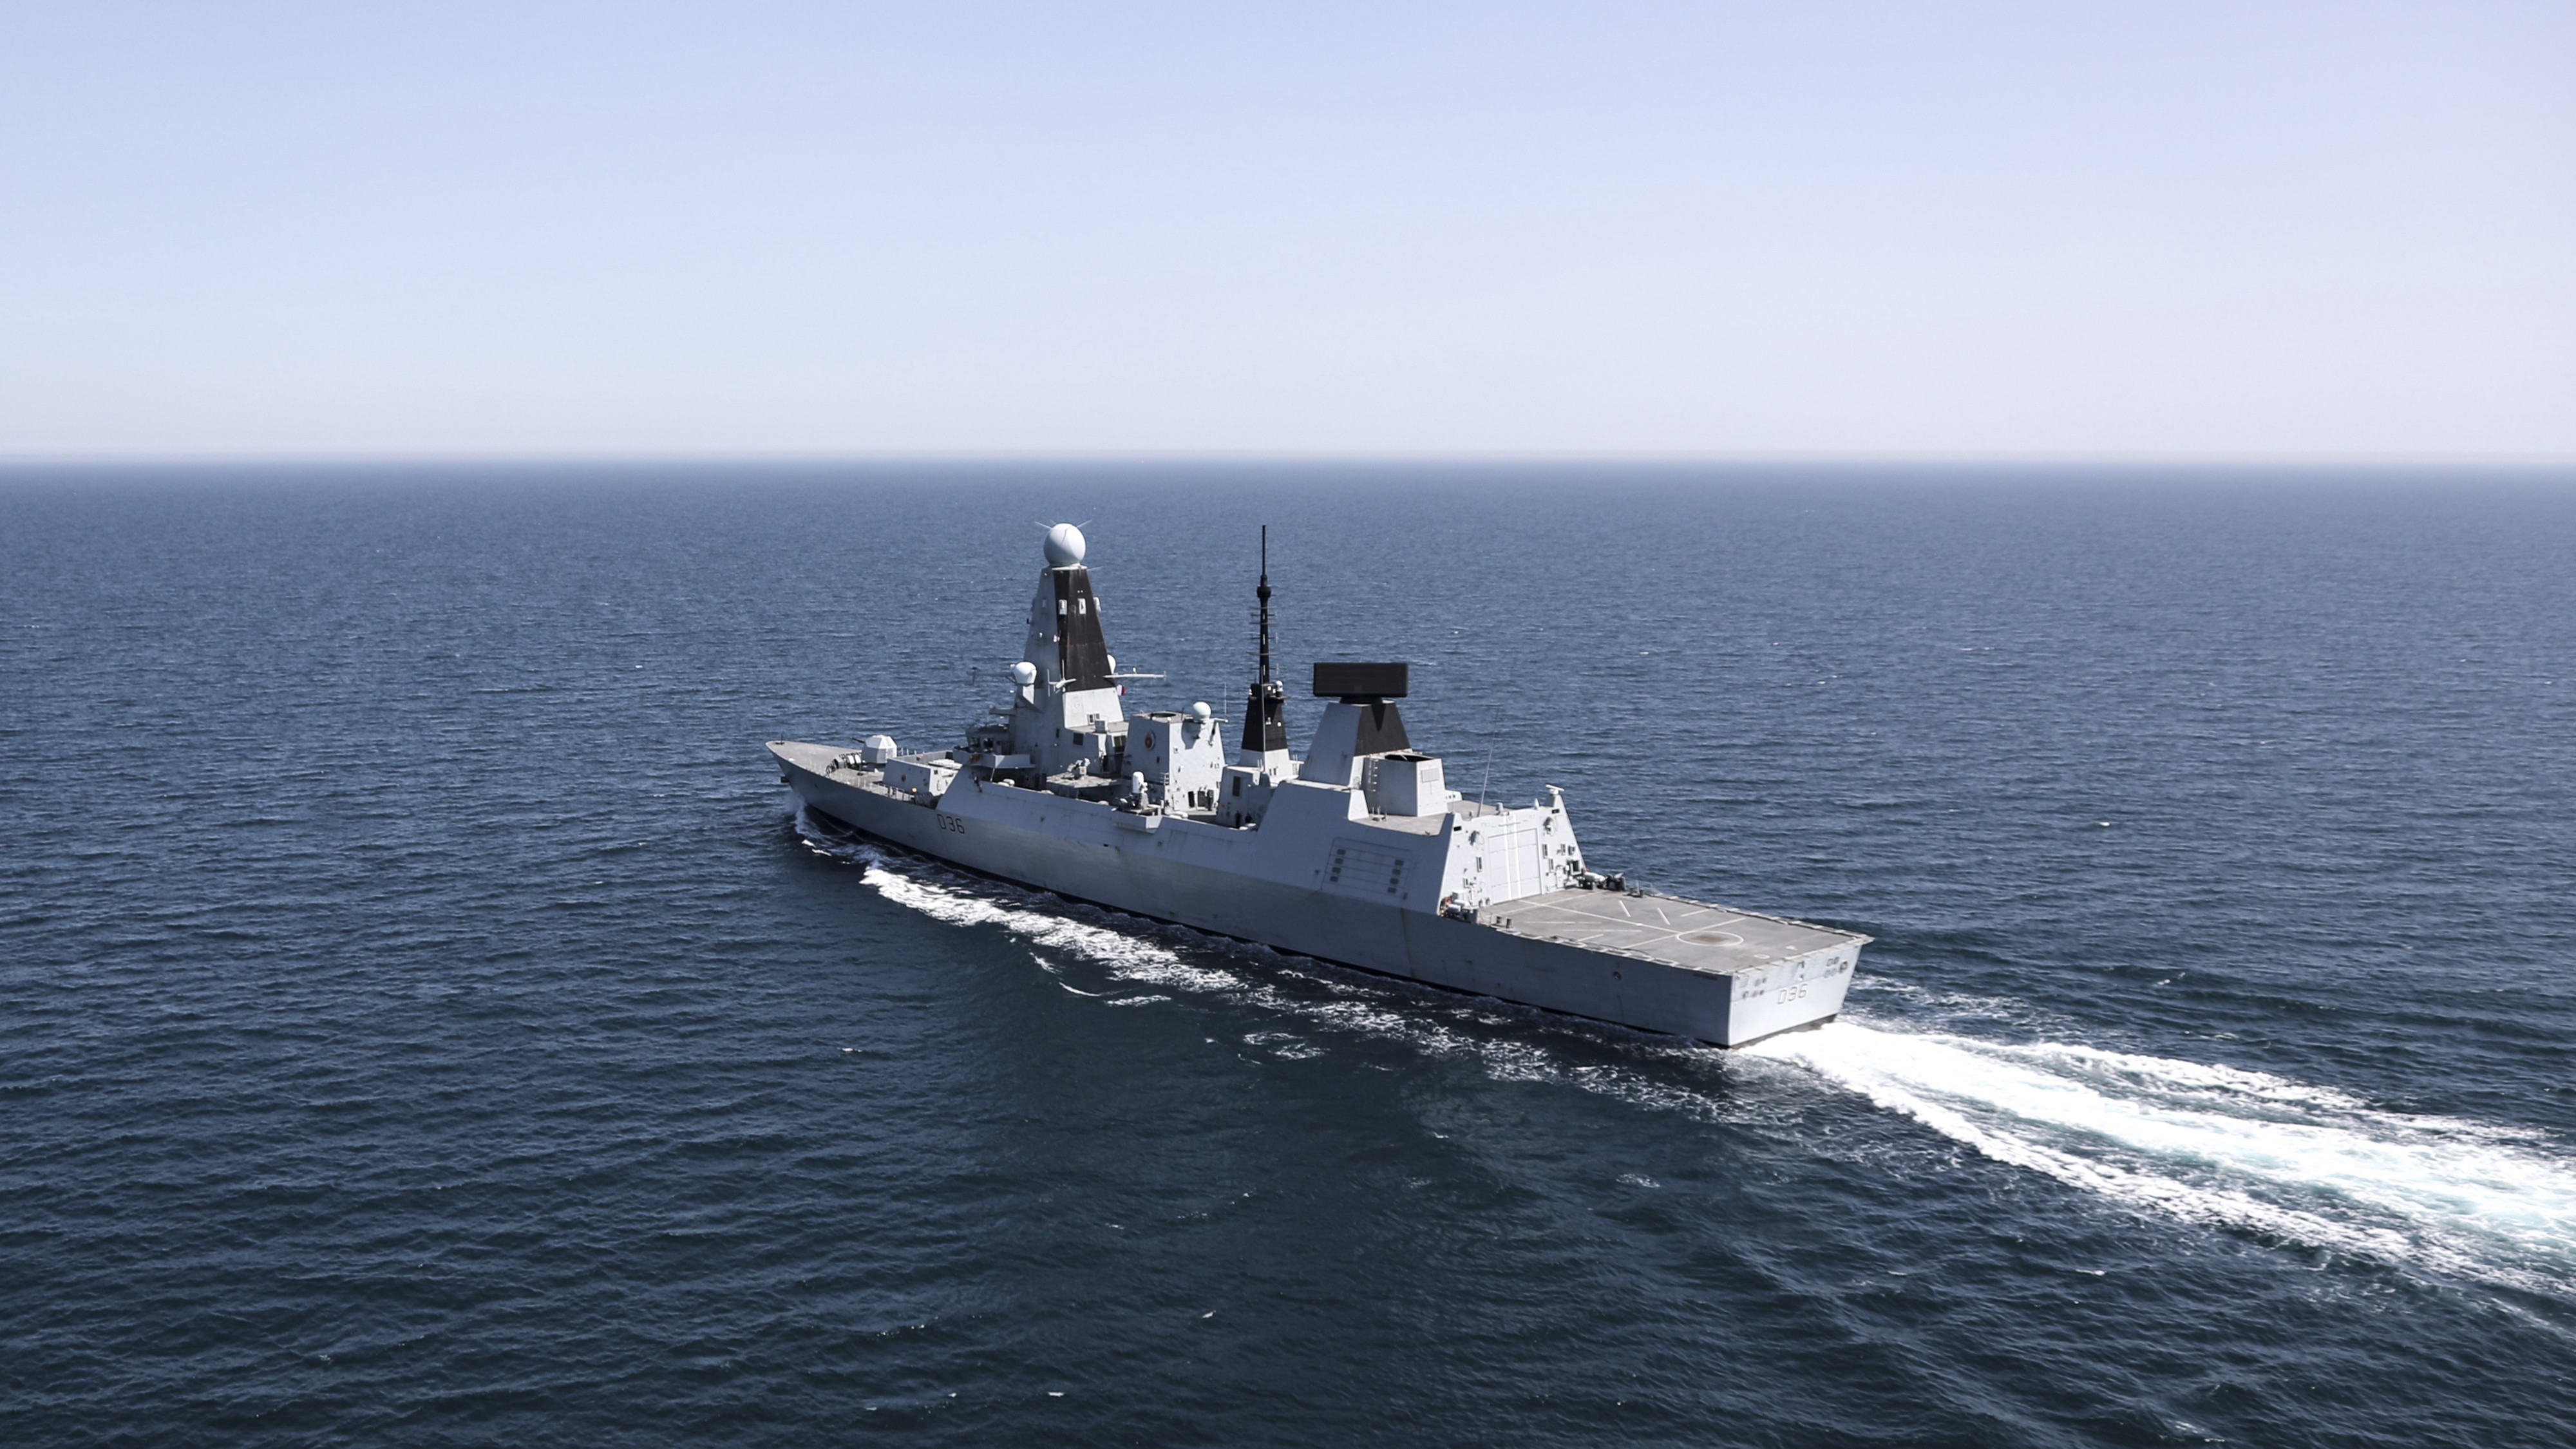 An image of HMS Defender out at sea.